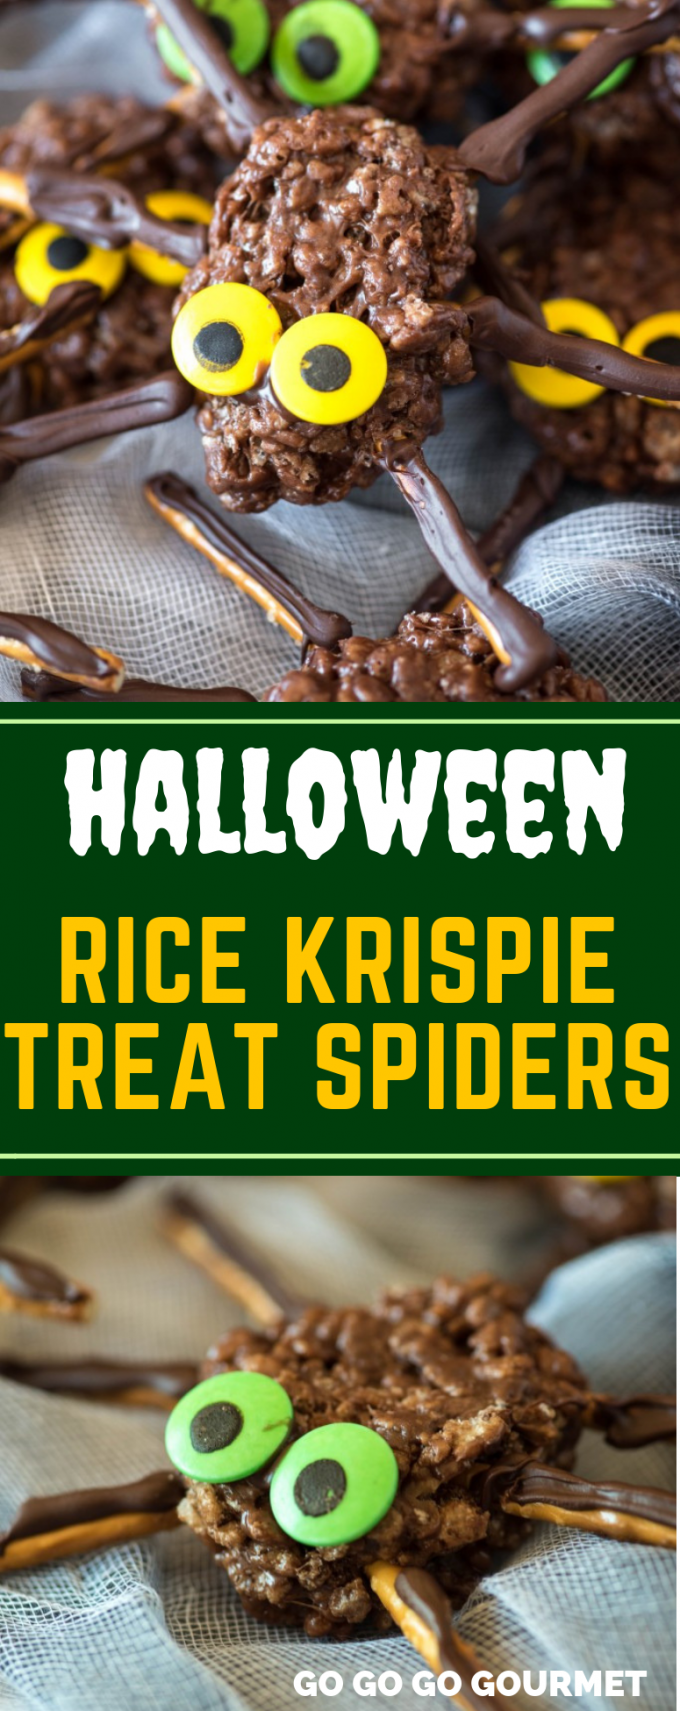 If you're looking for fun recipes for Halloween, look no further! Forget the pumpkins and ghosts, these Chocolate Peanut Butter Rice Krispie Spiders easy enough for the kids to help with, and yummy too! One of the best Halloween desserts ideas ever! #gogogogourmet #chocolatepeanutbutterricekrispiespiders #halloweentreats #halloweendesserts  via @gogogogourmet